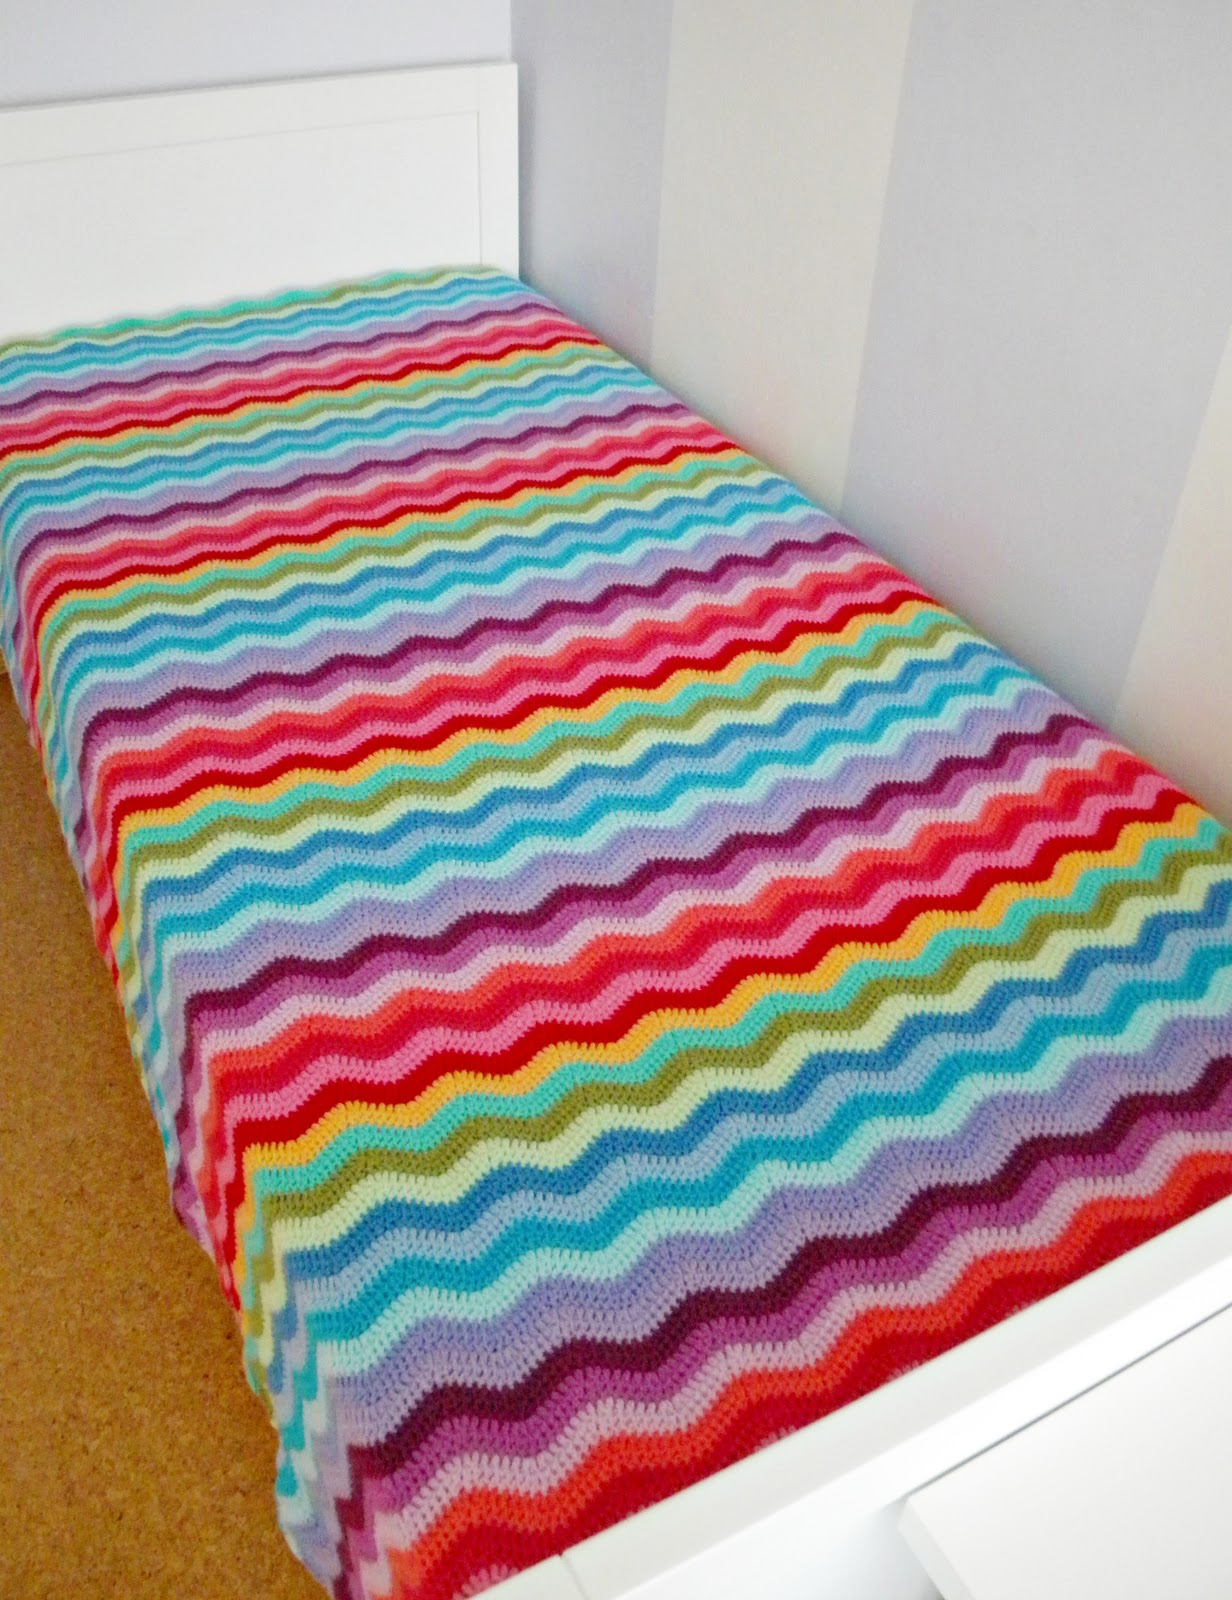 Ravelry Granny Stripes pattern by Lucy of Attic24